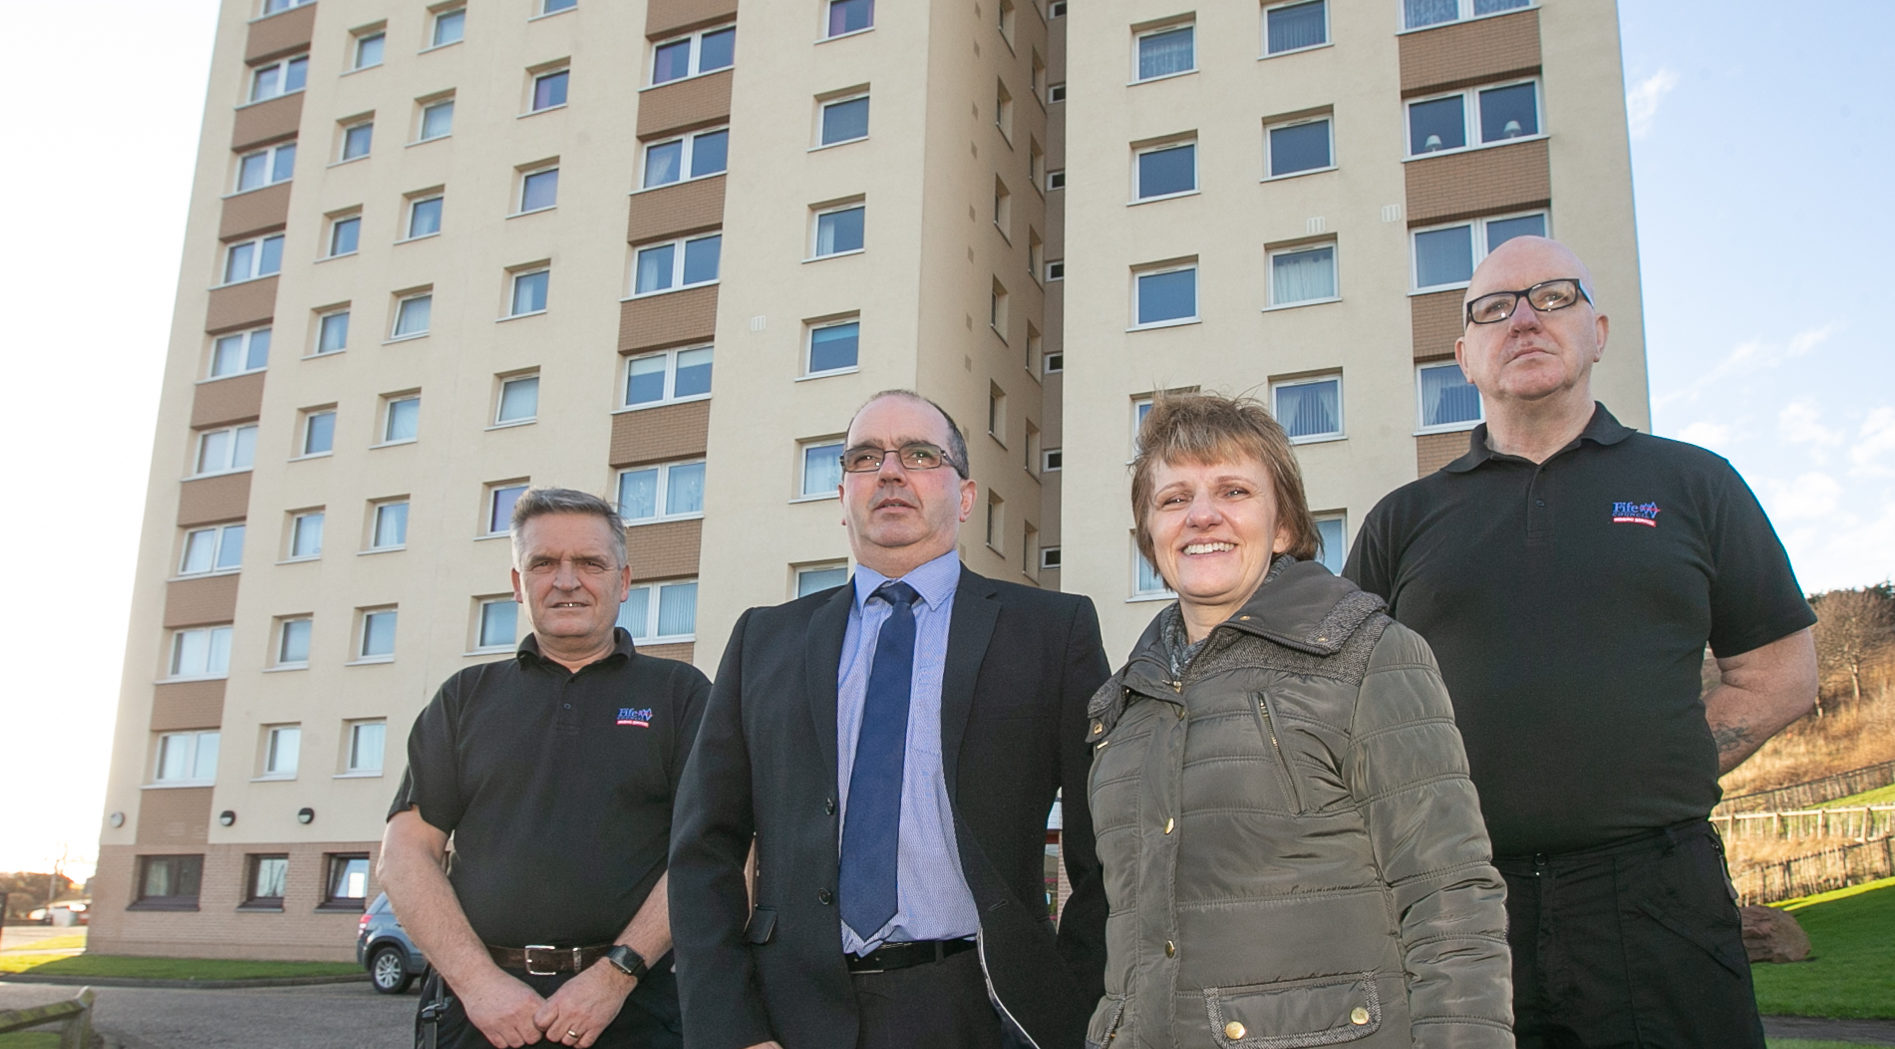 Councillor Judy Hamilton meets up with caretakers at Methil's Swan Court. From left to right Brian Dryburgh, Housing manager Peter Nicol, Mrs Hamilton and Bill Barker